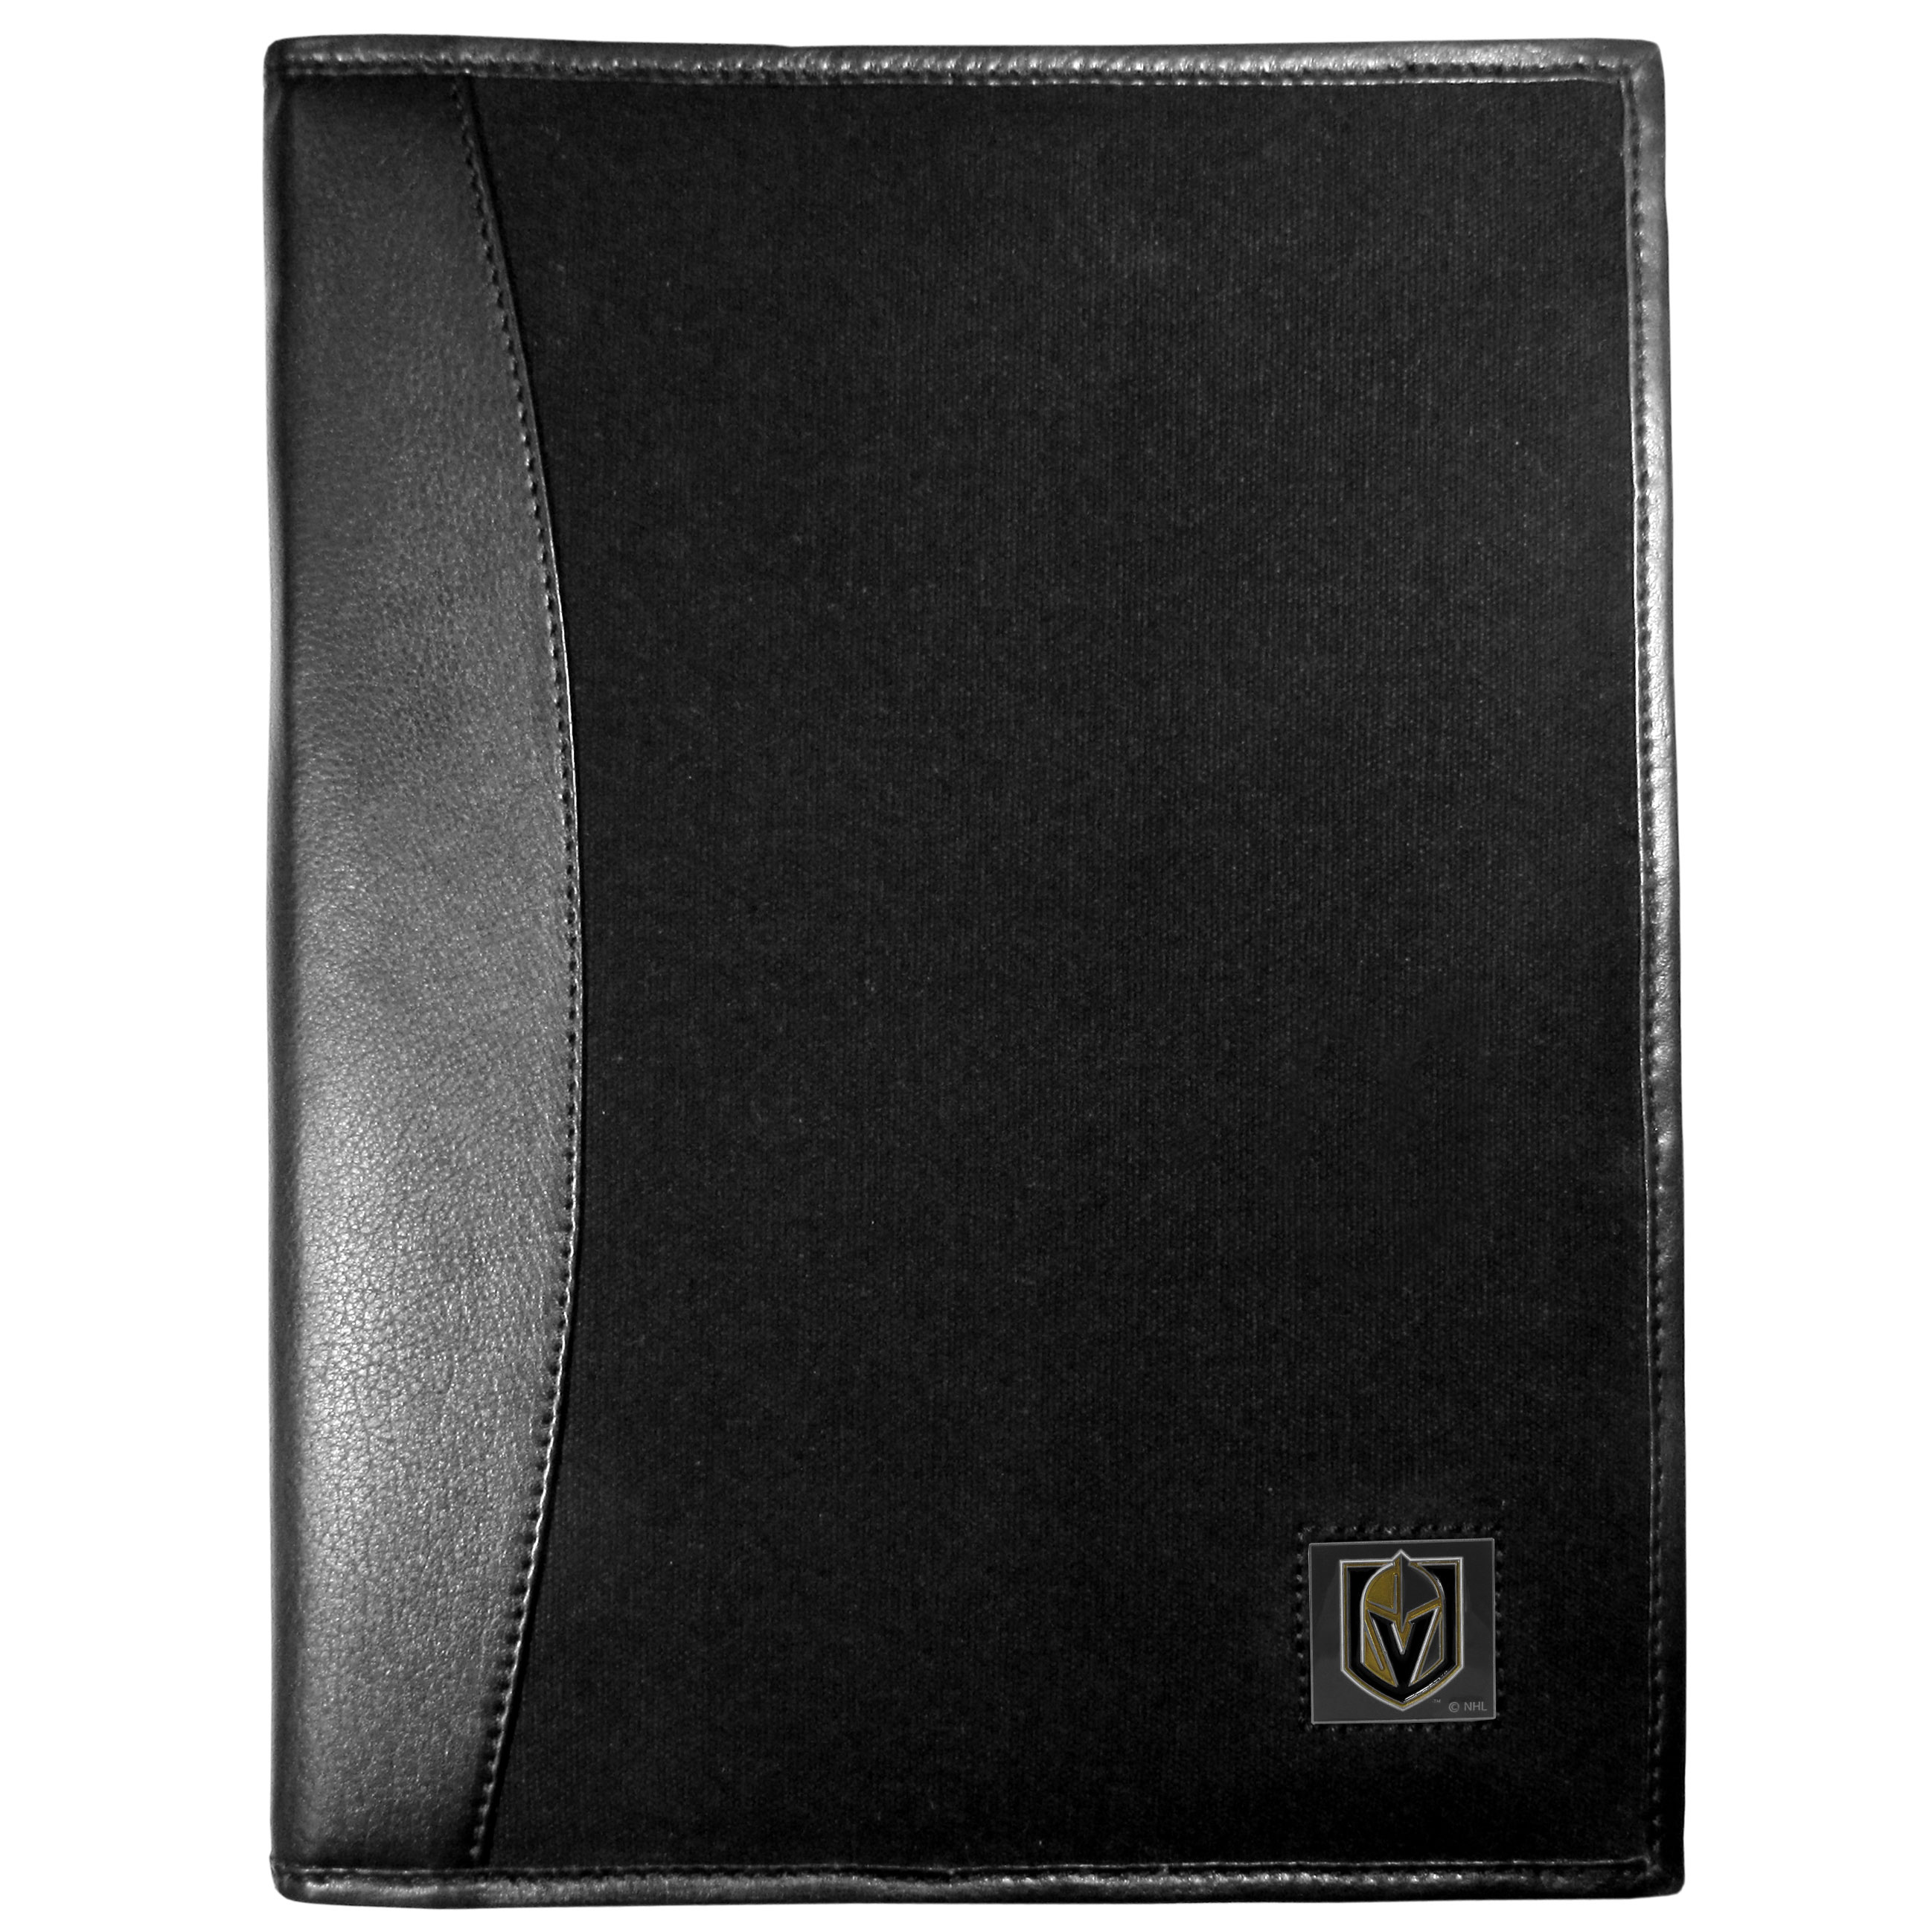 Vegas Golden Knights® Leather and Canvas Padfolio - Our leather and canvas padfolio perfectly blends form and function. The attractive portfolio is bound in fine grain leather with an attractive canvas finish and the interior is a soft nylon. This high quality business accessory also features a fully cast metal Vegas Golden Knights® emblem that is subtly set in the corner of the organizer. It is packed with features like 6 card slots for badges, business cards, hotel keys or credit cards and ID with a large pocket for loose papers and a writing tablet slot making it a must-have for the professional on the go.